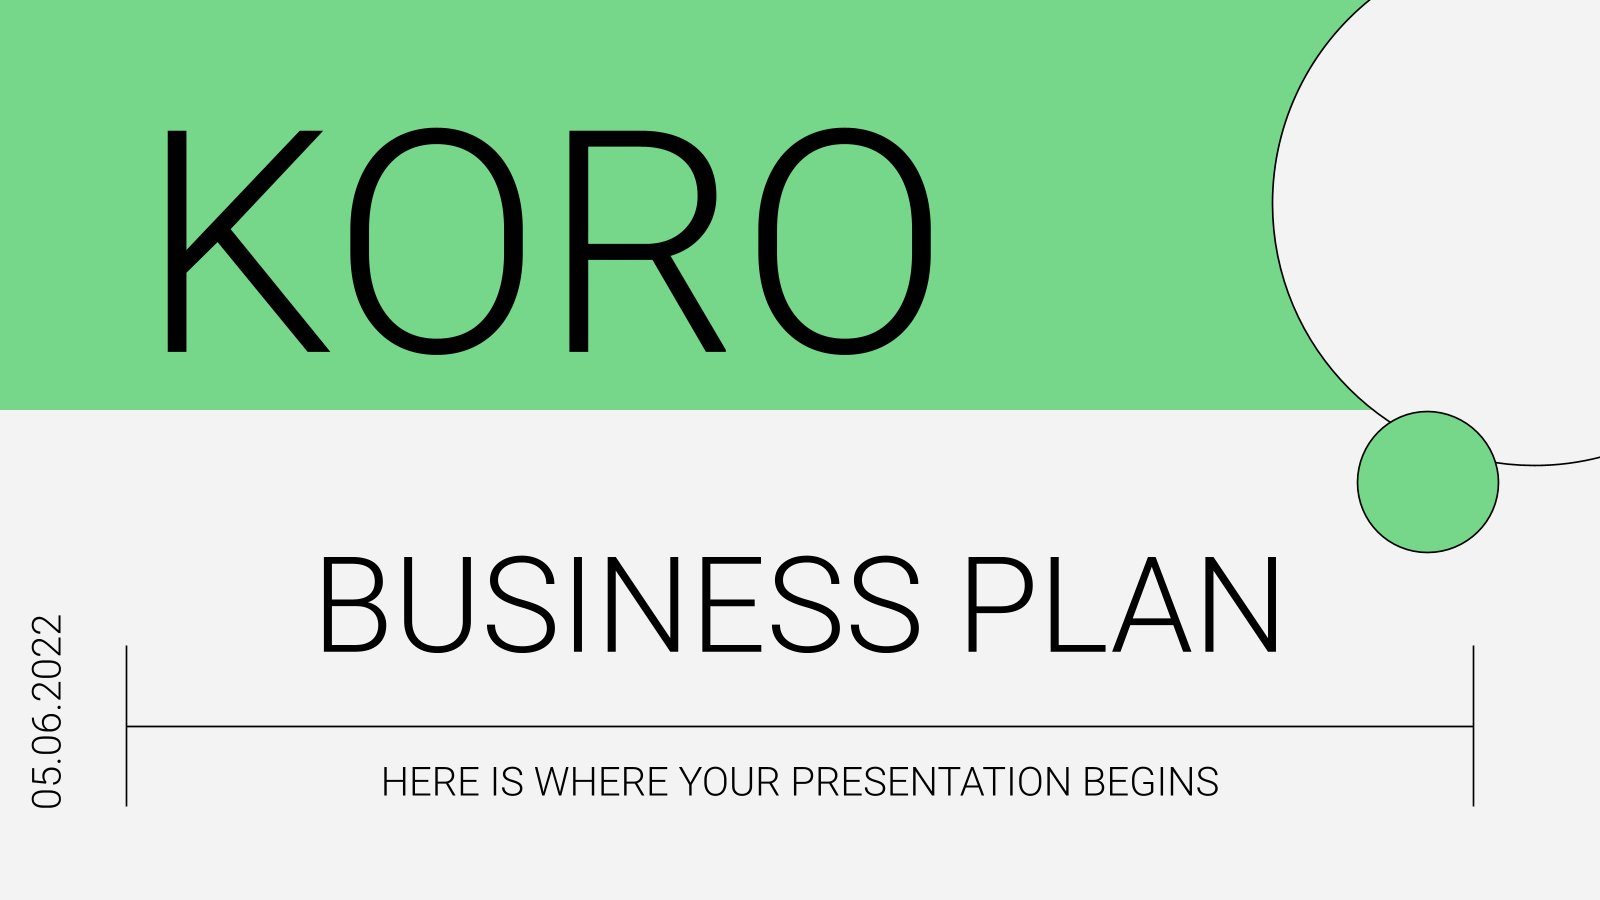 Koro Business Plan presentation template